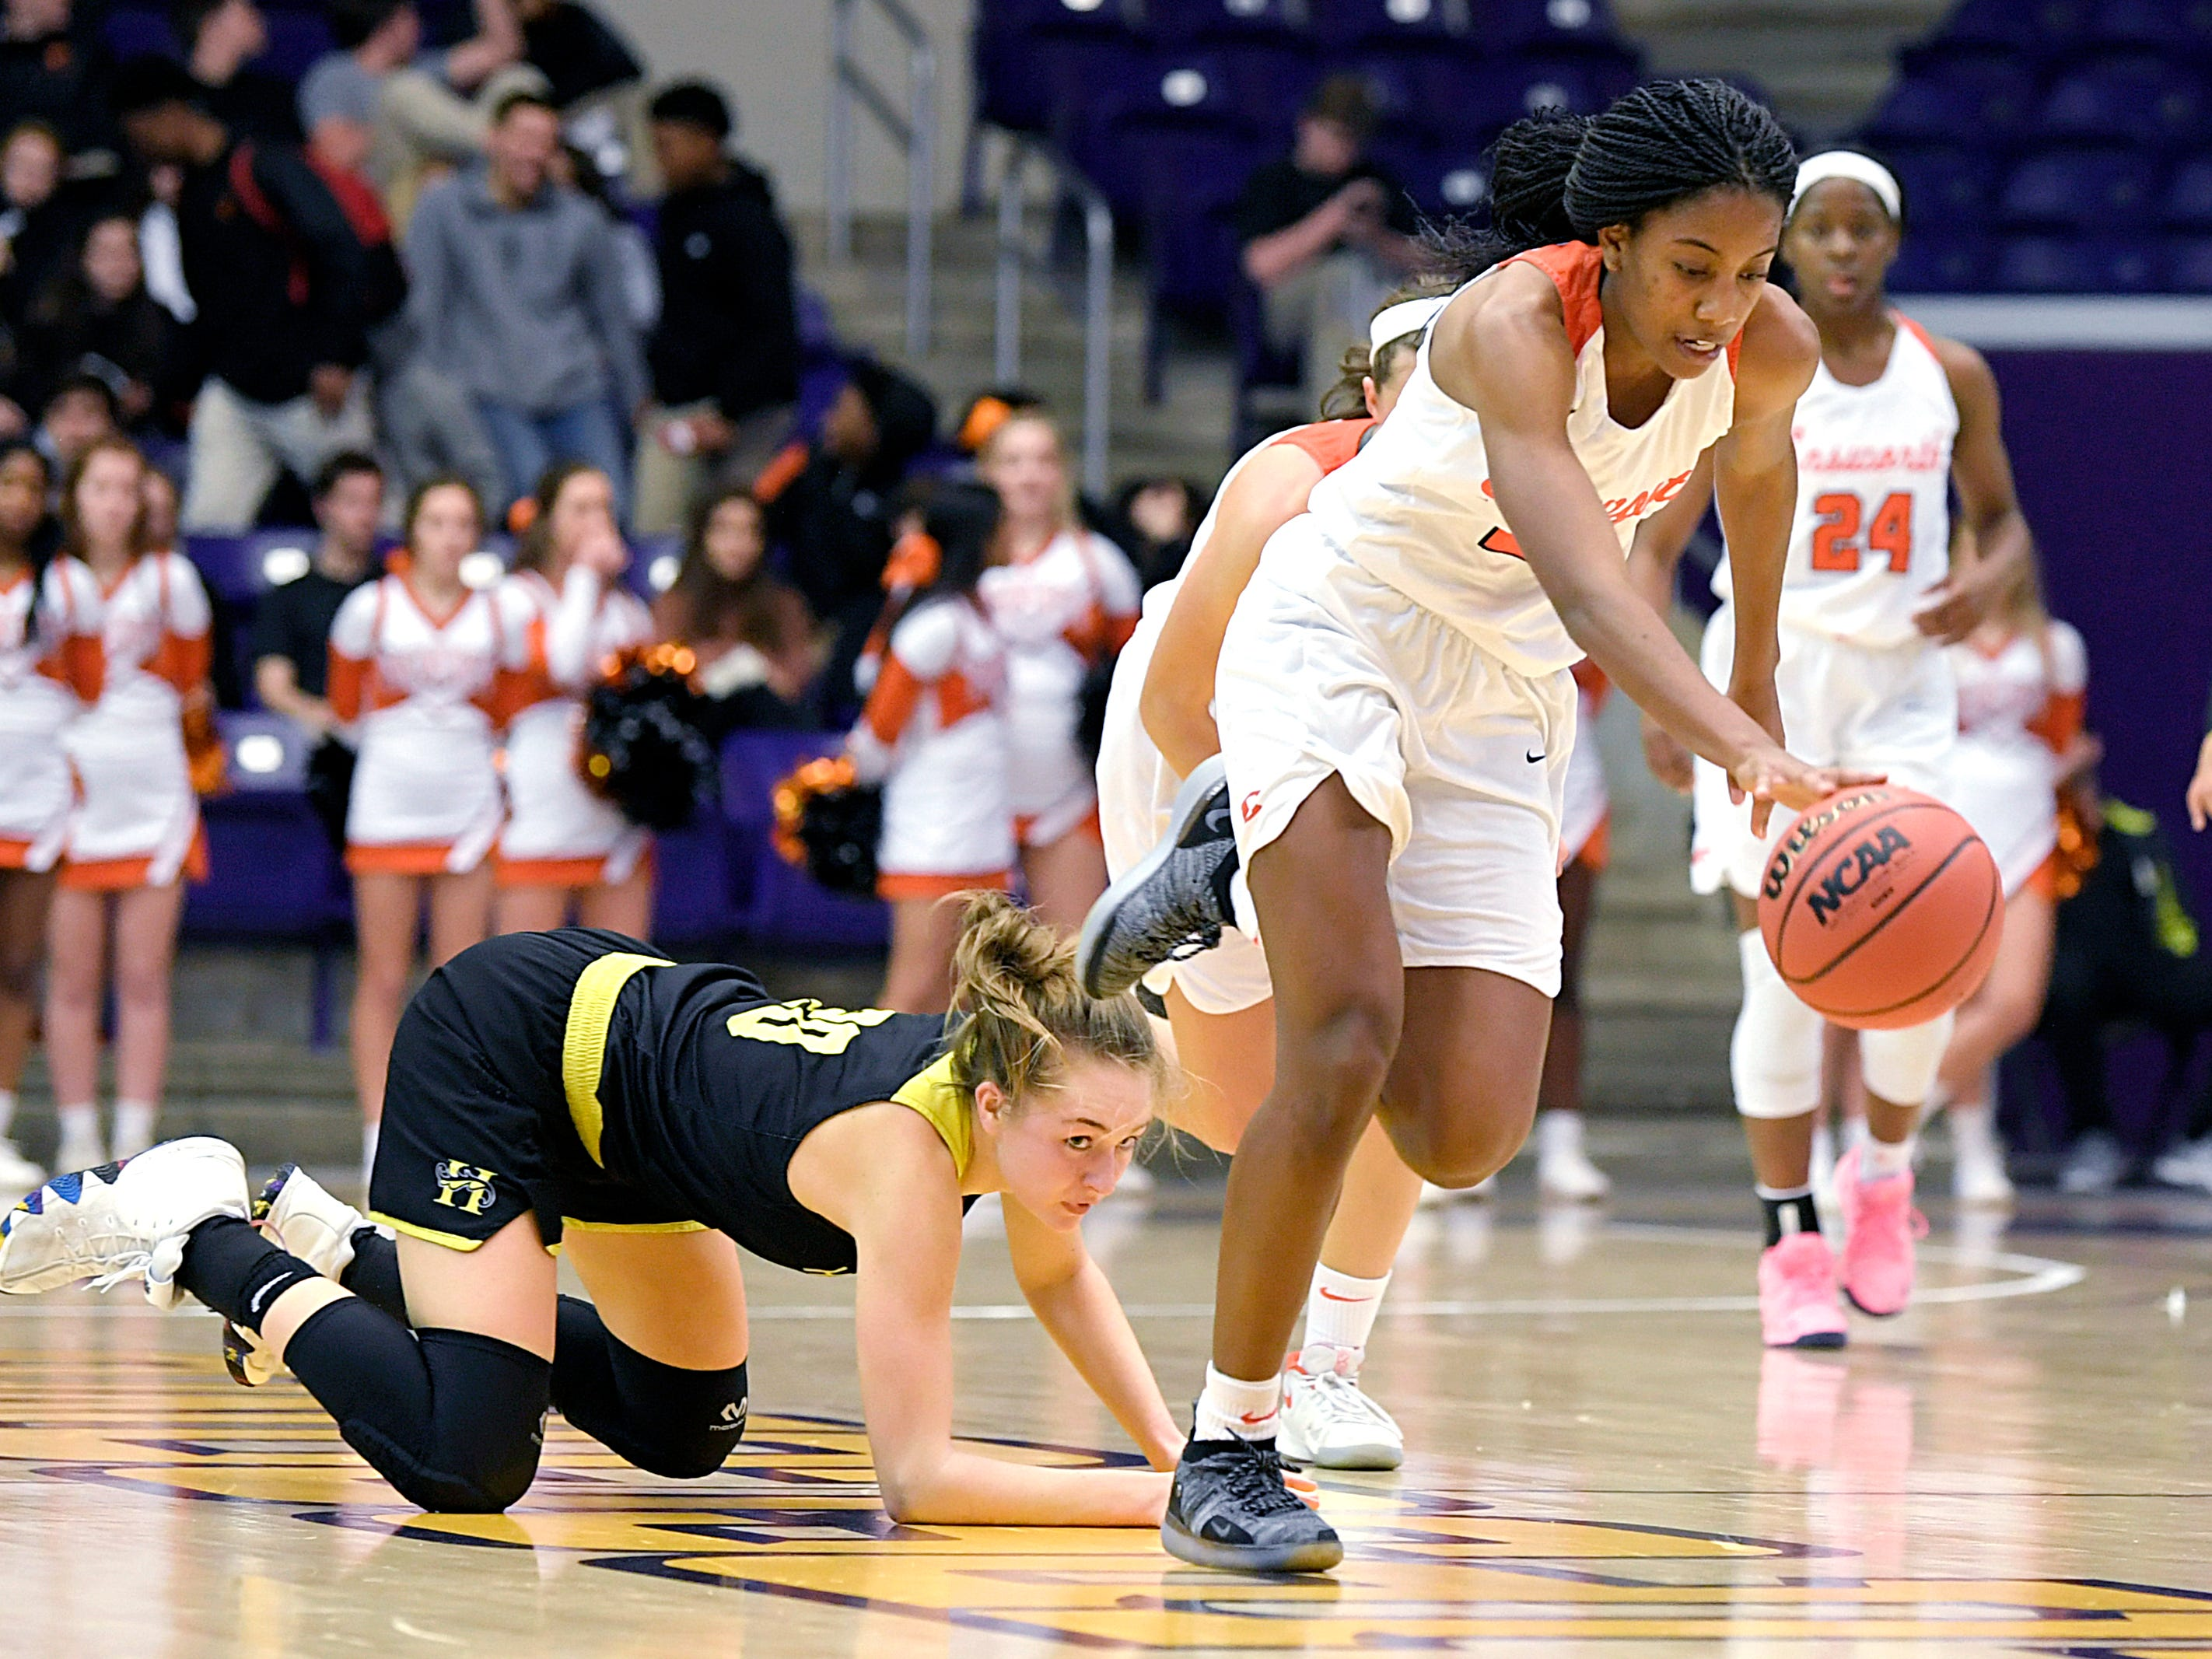 Ensworth's Kaiya Wynn (21) steals the ball from Hutchison's Maxine Engle (20) during the TSSAA Division II Class AA semifinals at Lipscomb University's Allen Arena in Nashville on Thursday, Feb. 28, 2019.